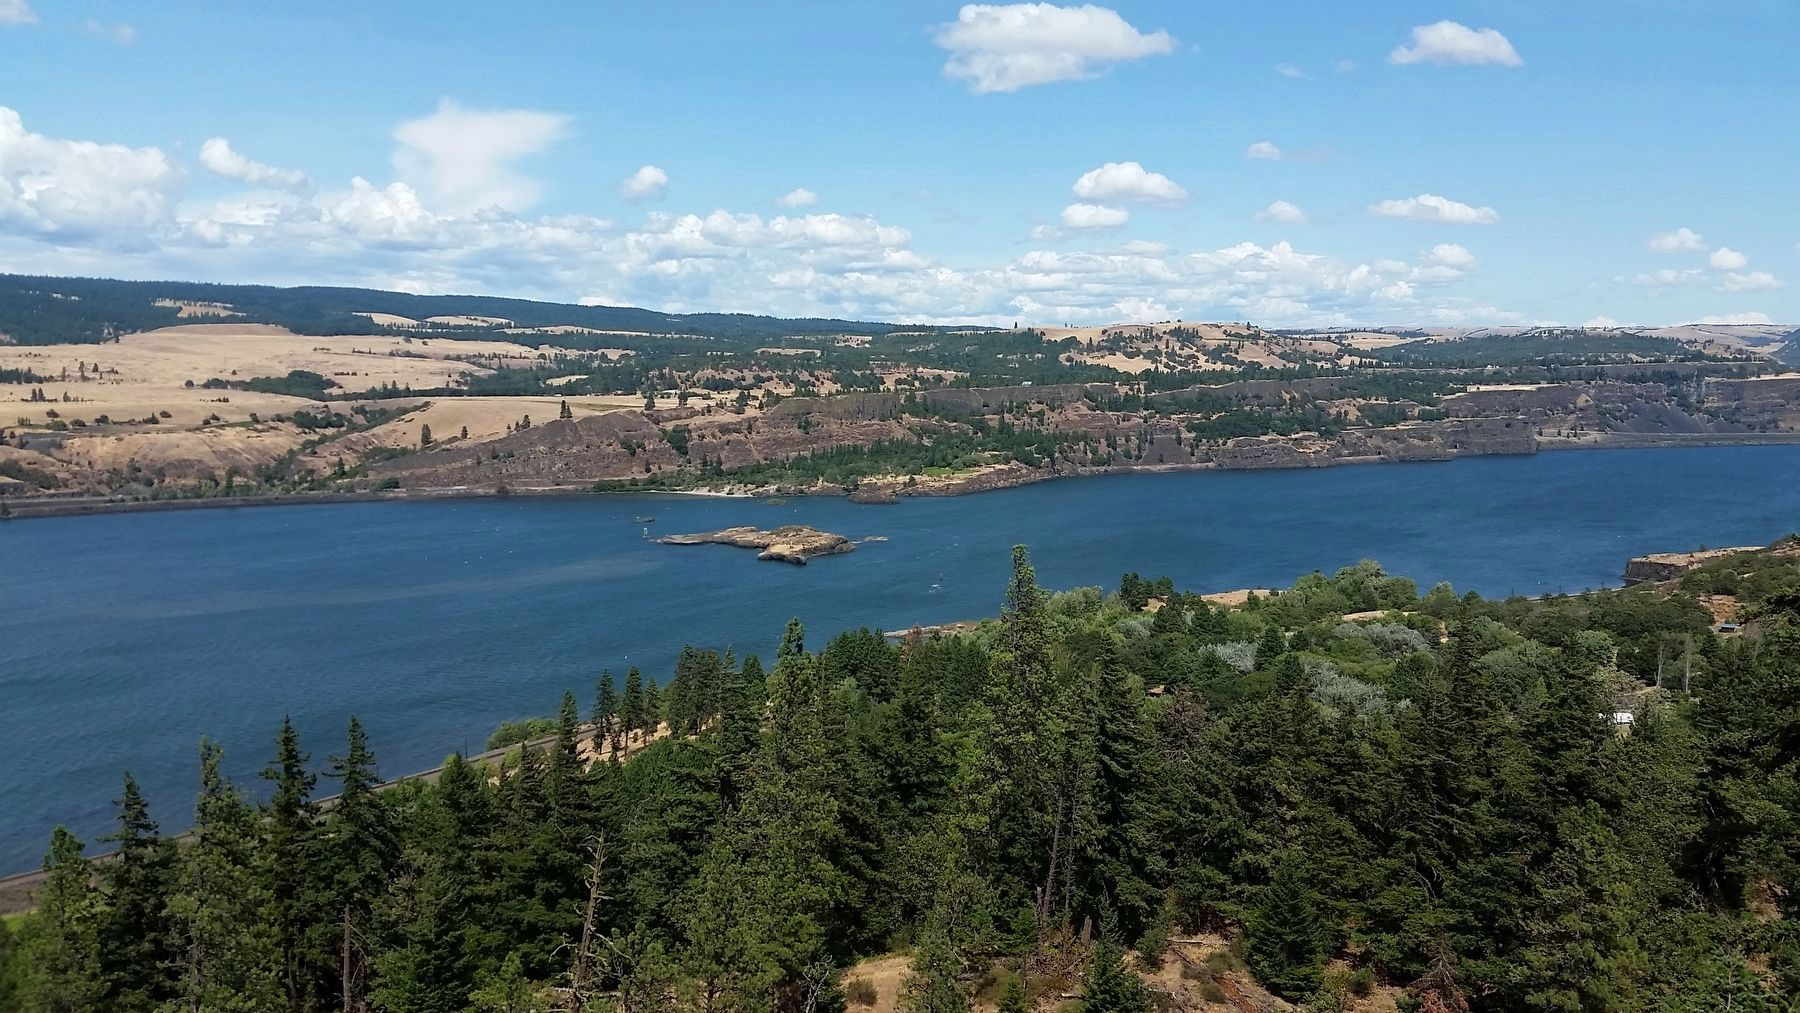 Memaloose Island & Columbia River (<i>view from marker</i>) image. Click for full size.